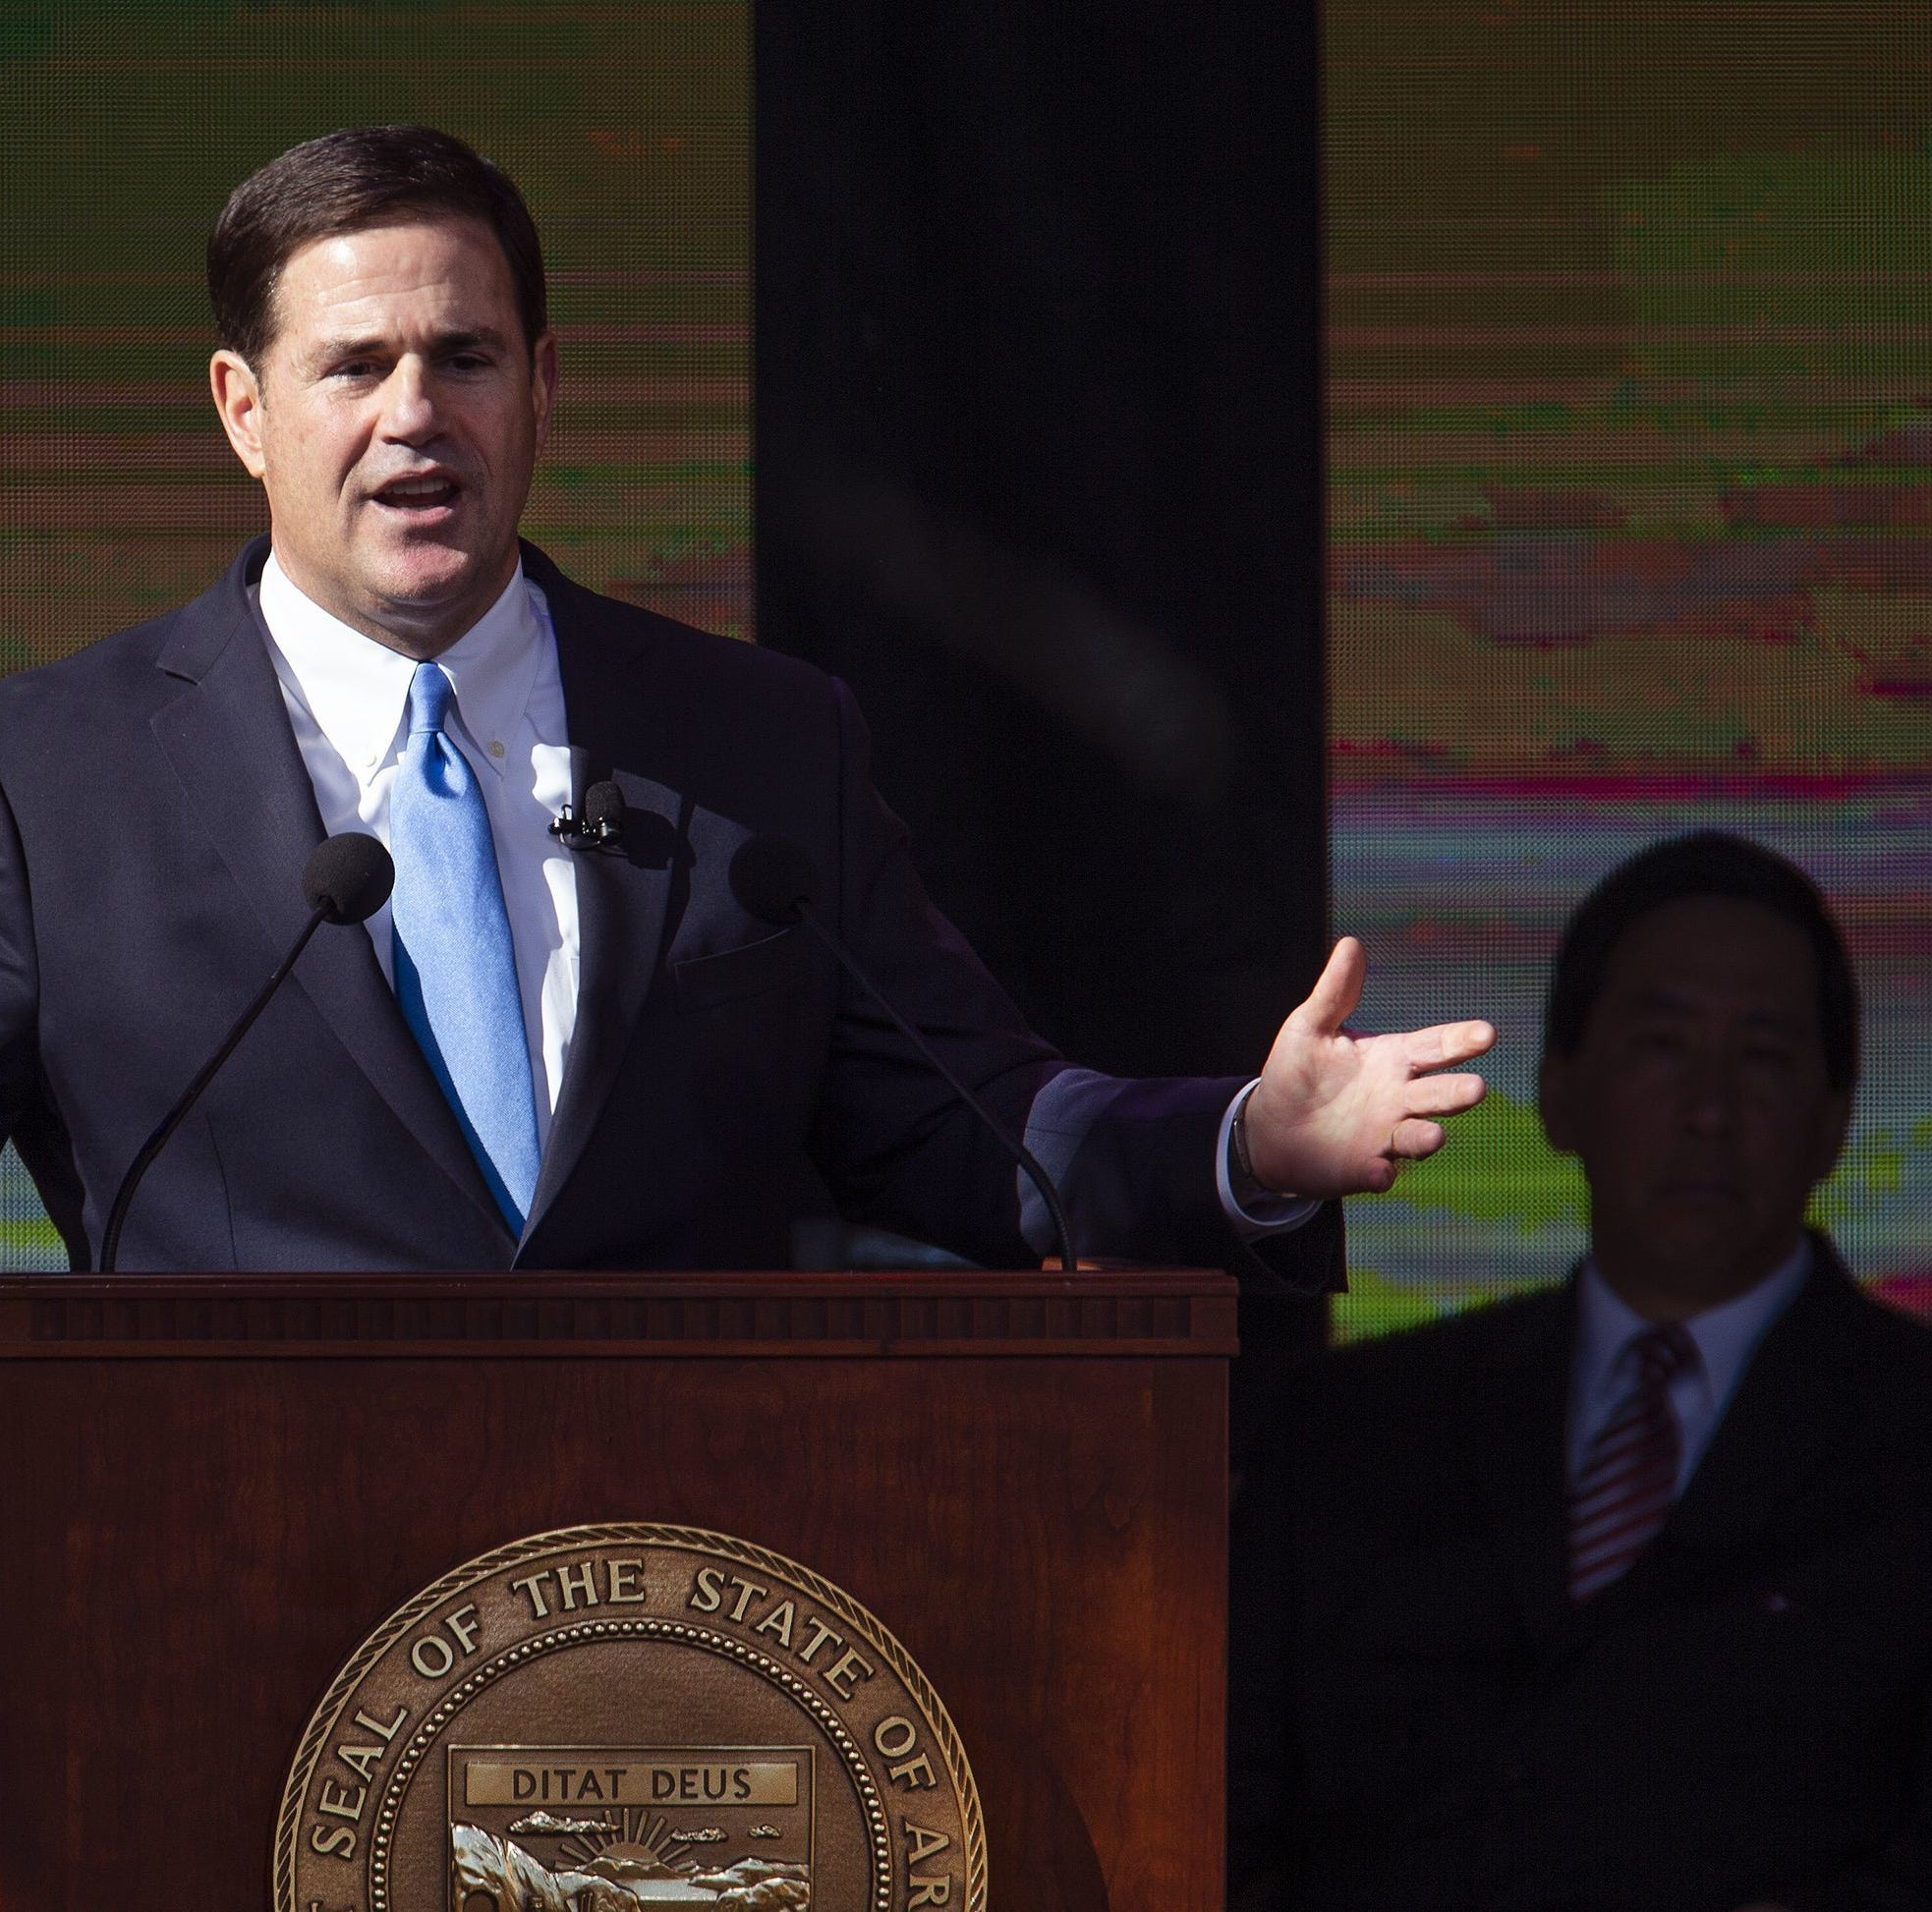 It's put up or shut up for Gov. Doug Ducey on charter school reform and bipartisanship